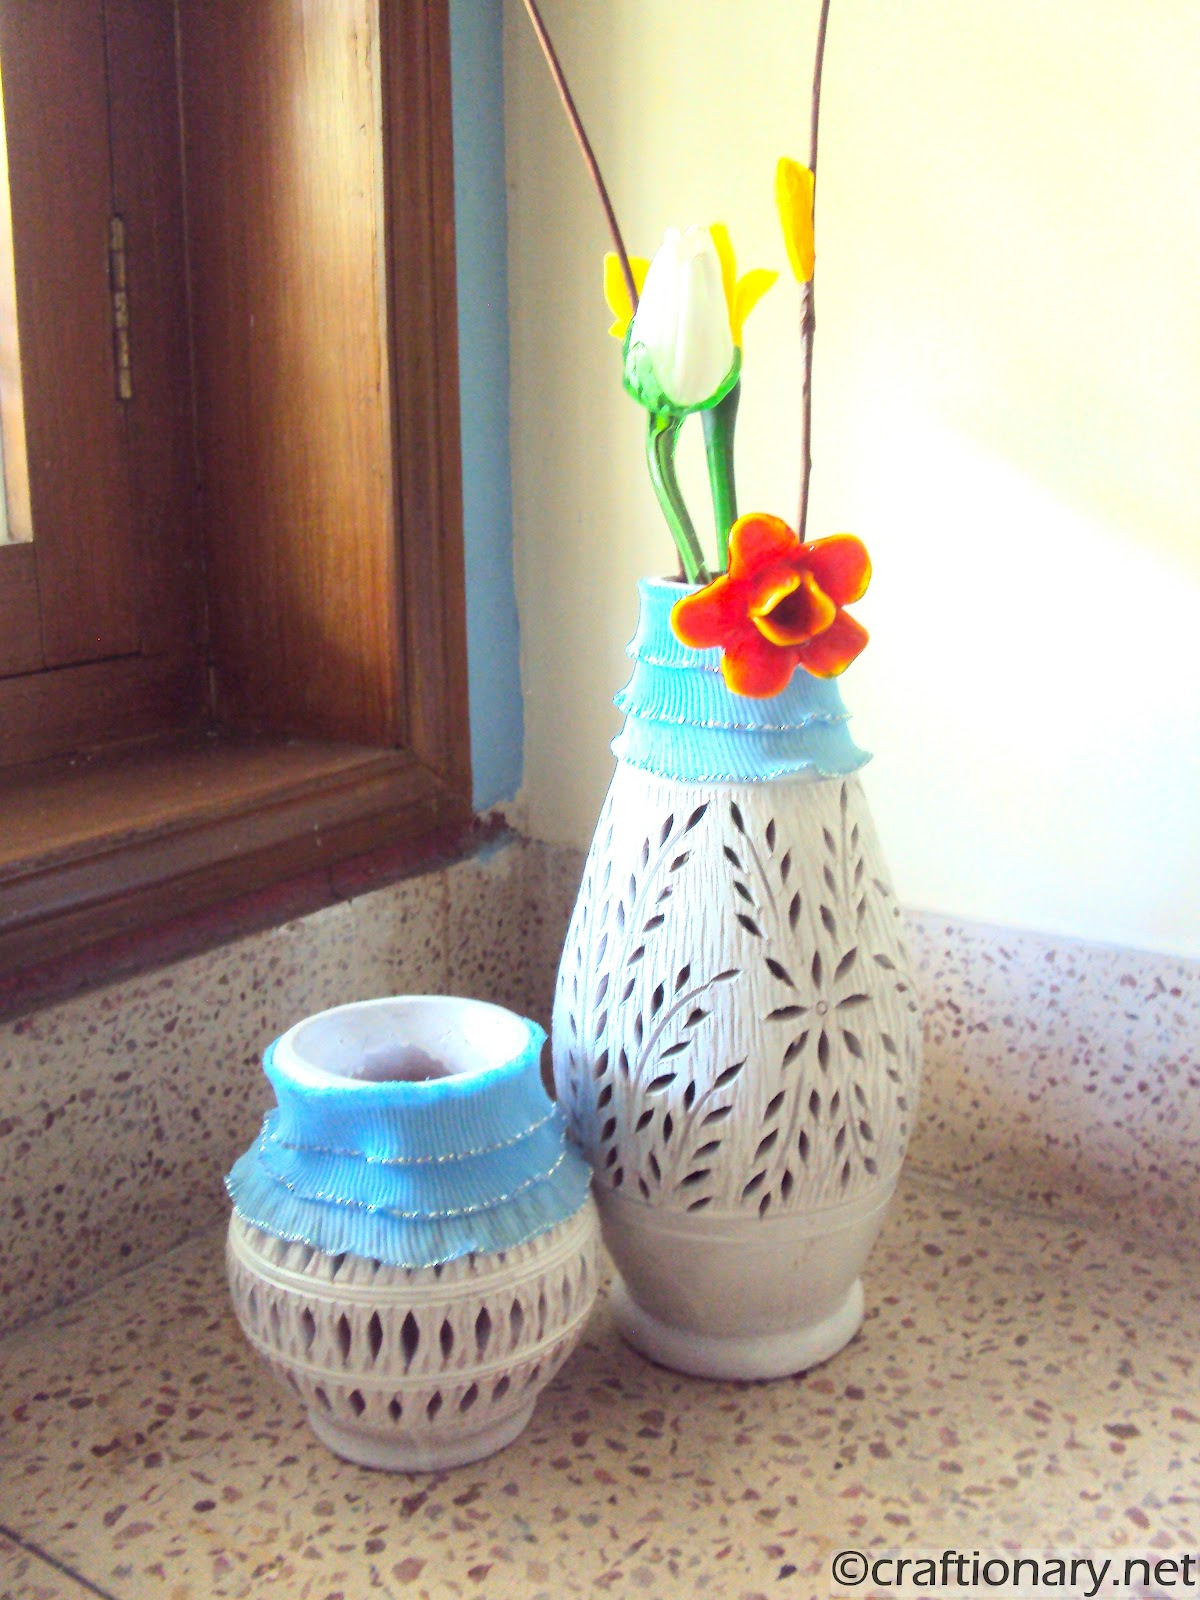 How To Make Beautiful Flower Pots At Home Craftionary